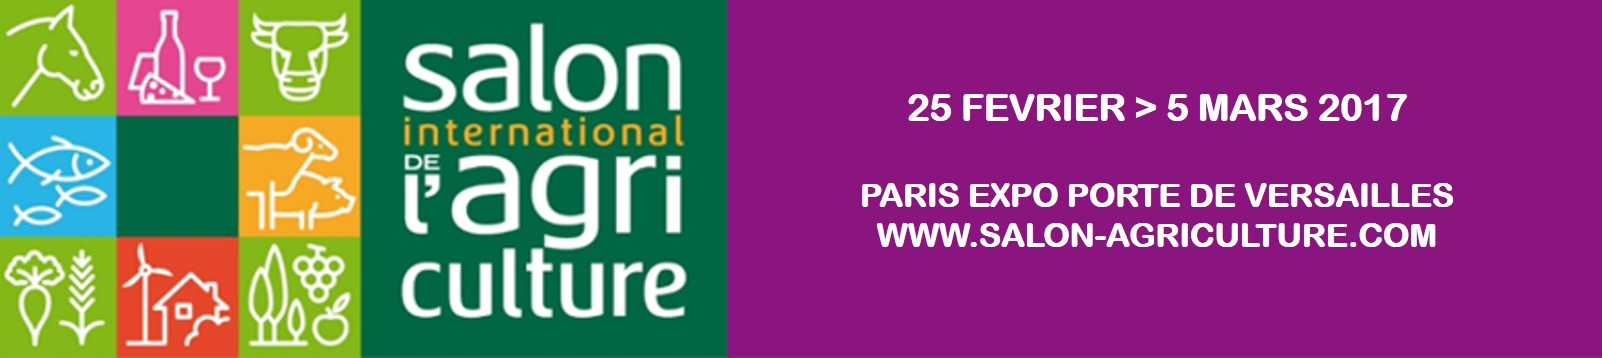 Salon de l 39 agriculture 2017 paris actualit s for Salon de paris 2017